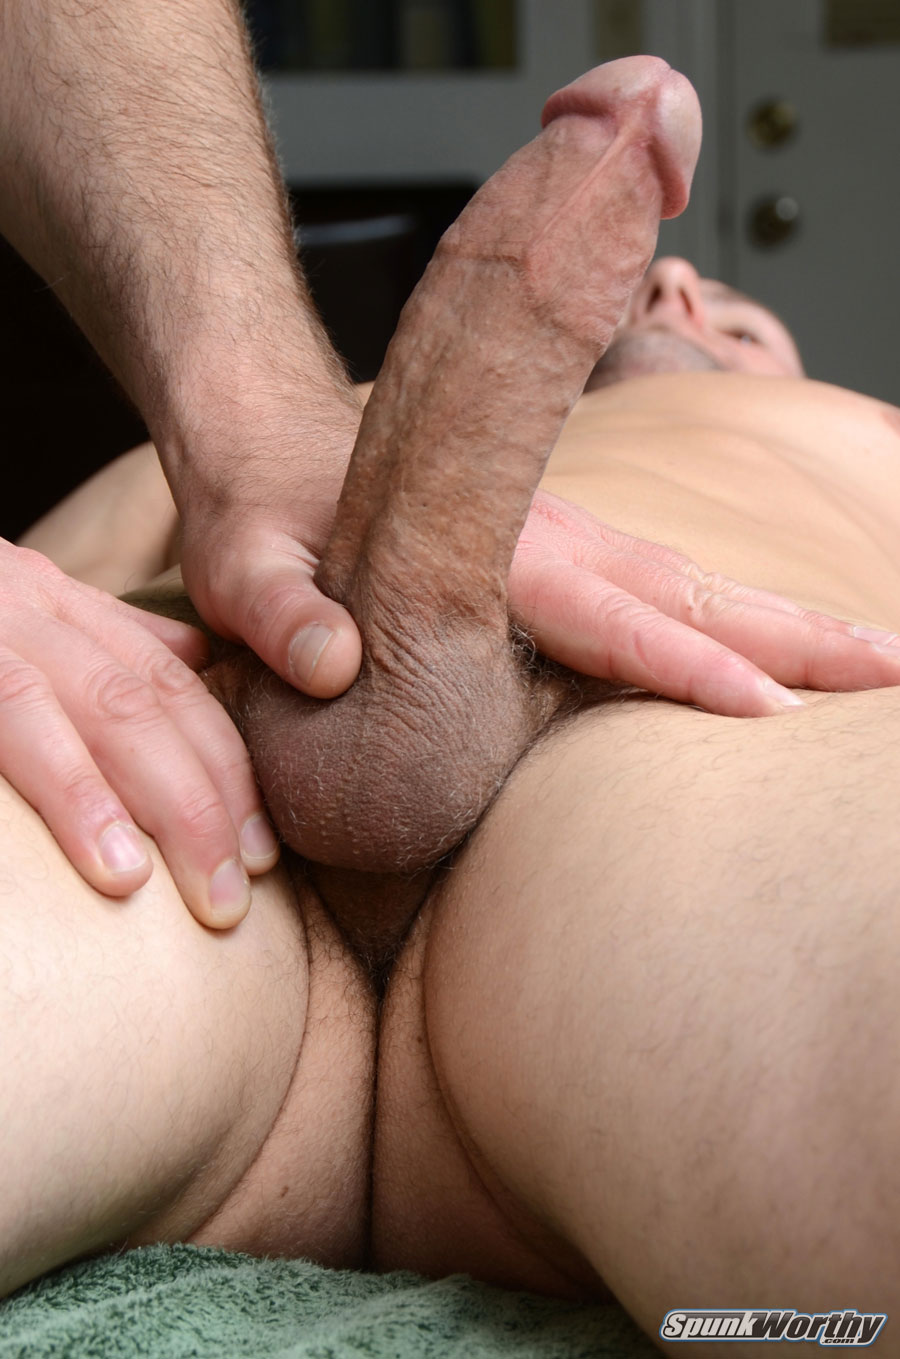 Muscled Bald Dude Gets Hot Fellatio Through Gloryhole